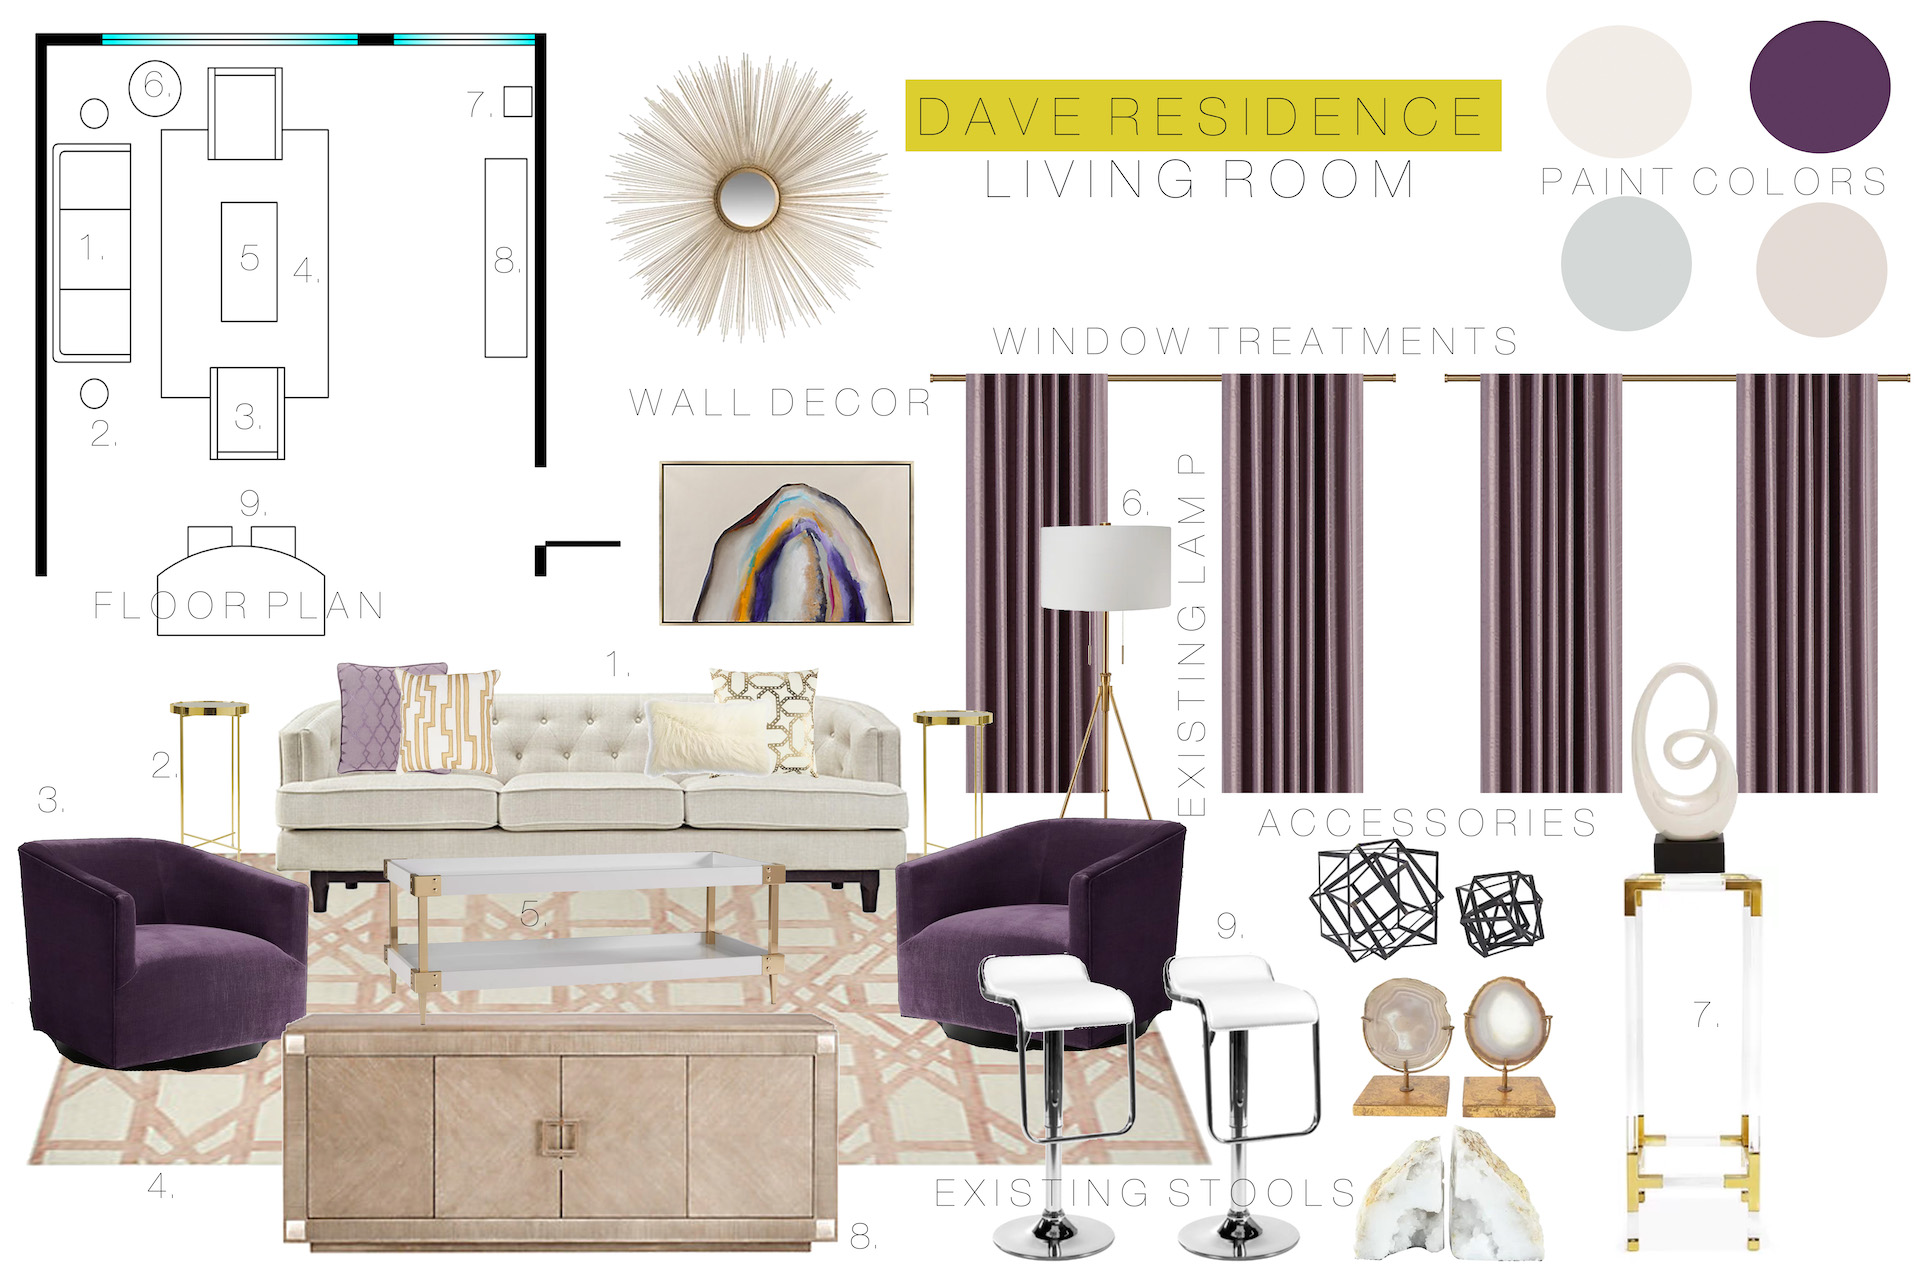 Client Mood Board with Furniture Plan